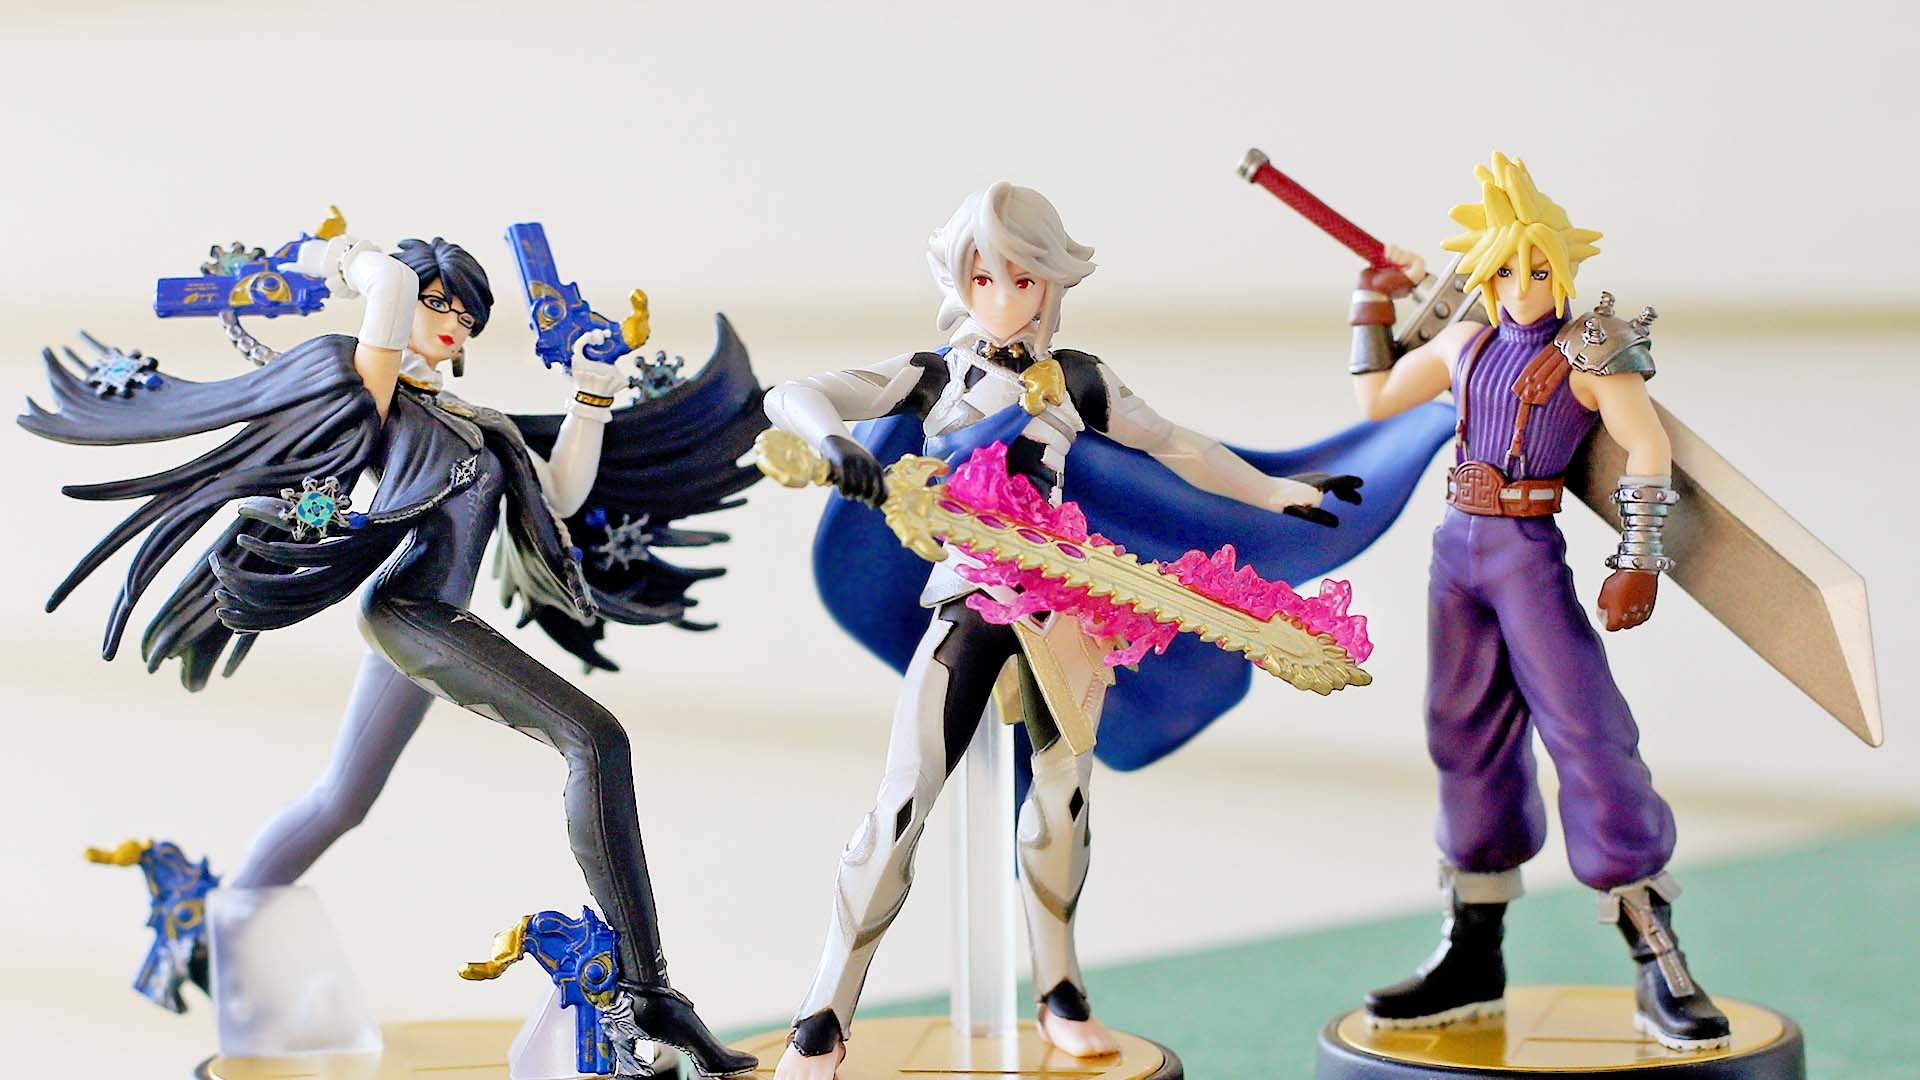 1920x1080 Unboxing | Super Smash Bros. Cloud, Corrin and Bayonetta amiibo (Player 1)  | Nintendo Wire